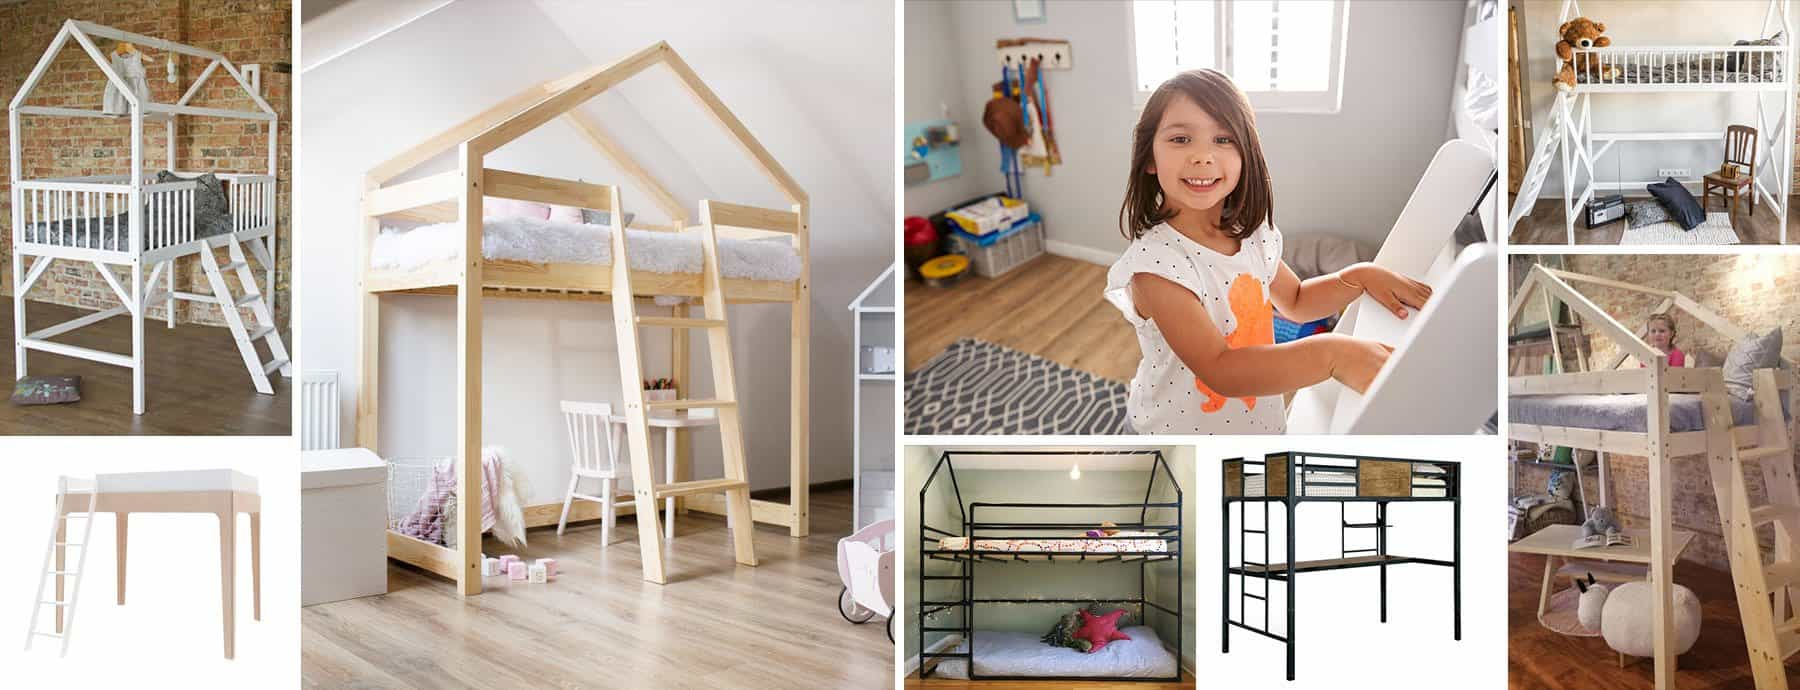 Picture of: 17 Best Loft Beds To Buy Loft Beds Buying Guide 2020 Nursery Kid S Room Decor Ideas My Sleepy Monkey